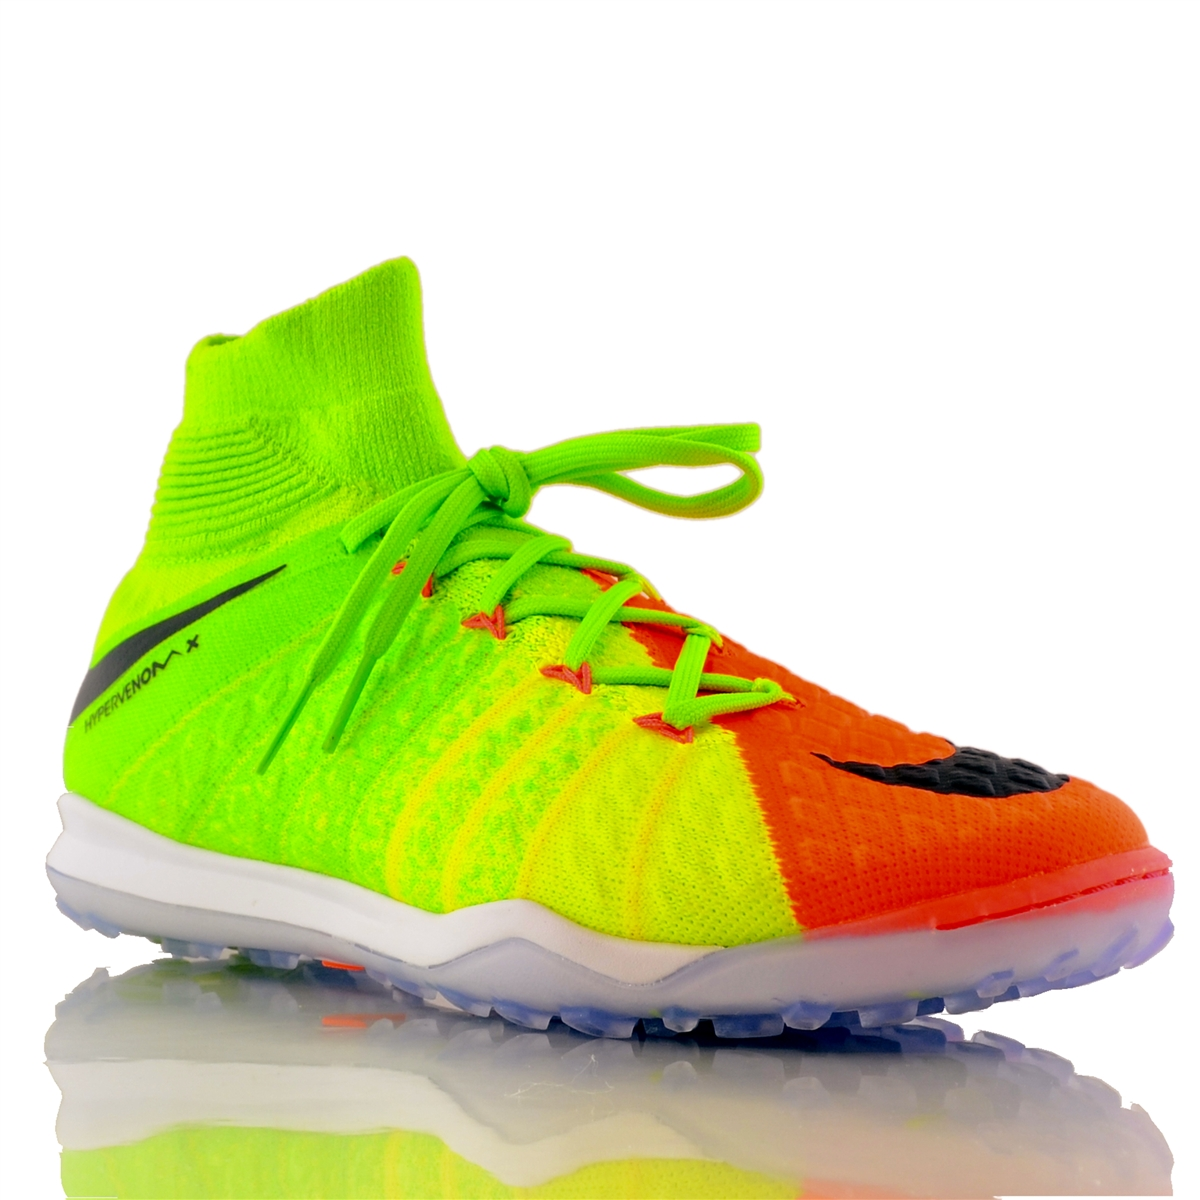 c8e7564722c7b Nike HypervenomX Proximo II DF TF Turf Soccer Shoes (Electric Green ...